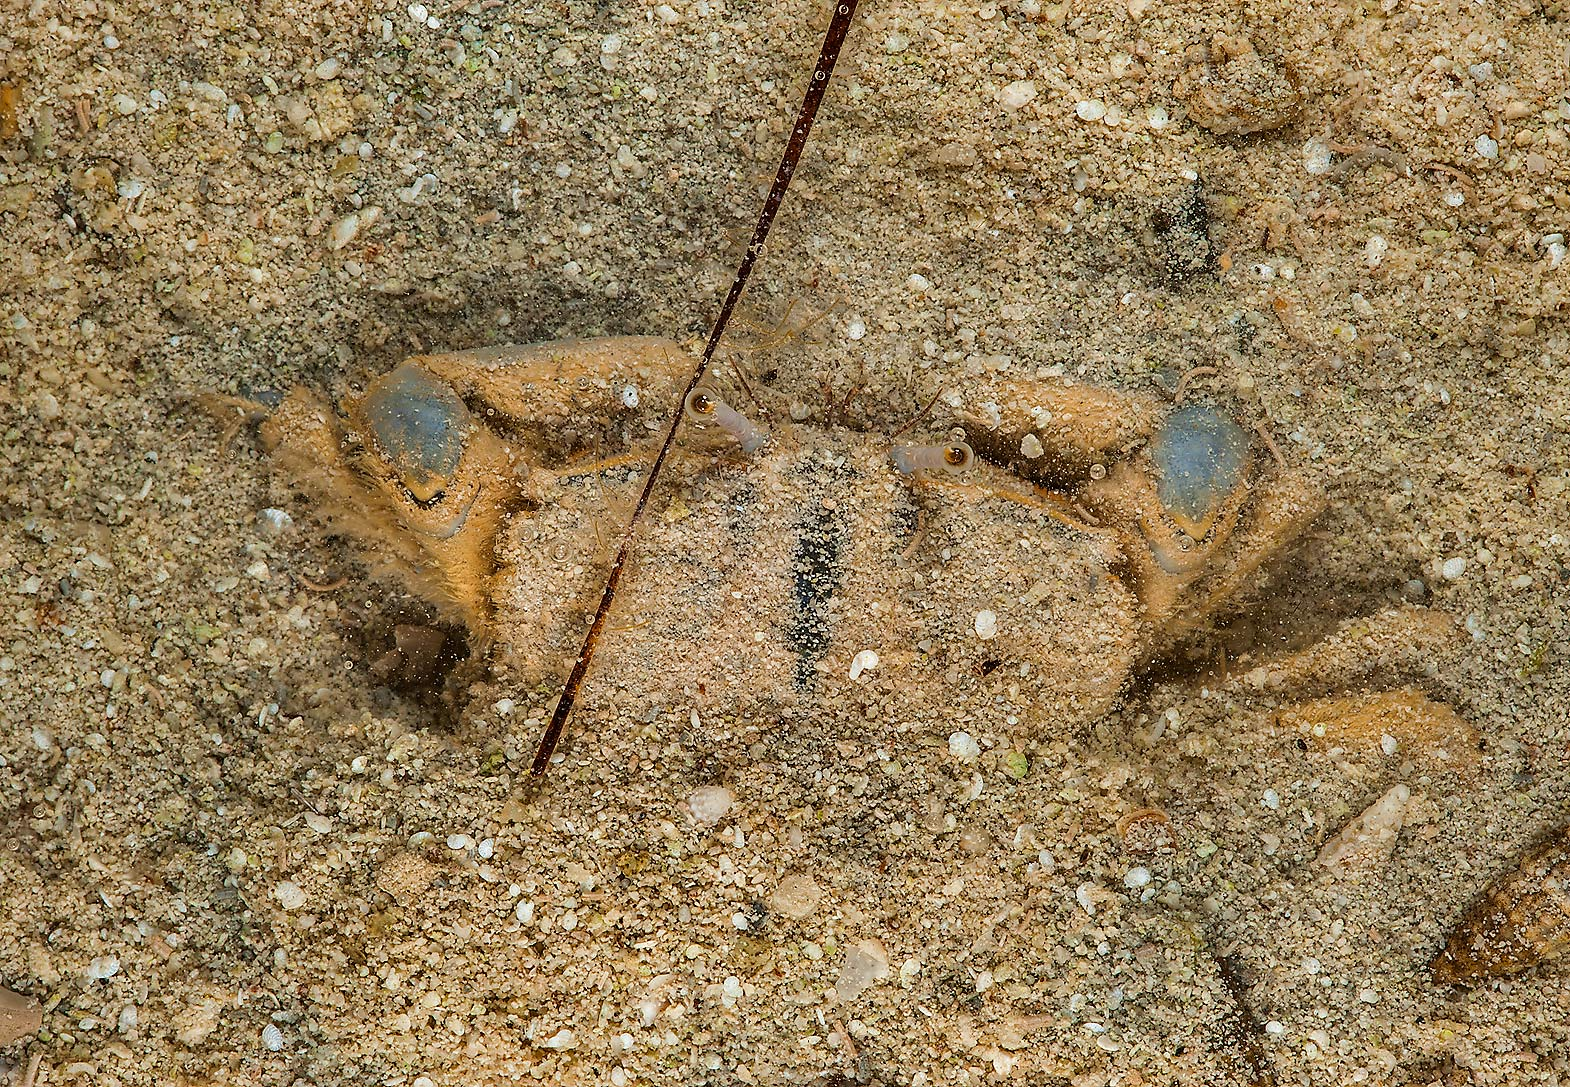 Small crab hiding in sand in shallow water in Al...on northern coast (Al Shamal). Qatar